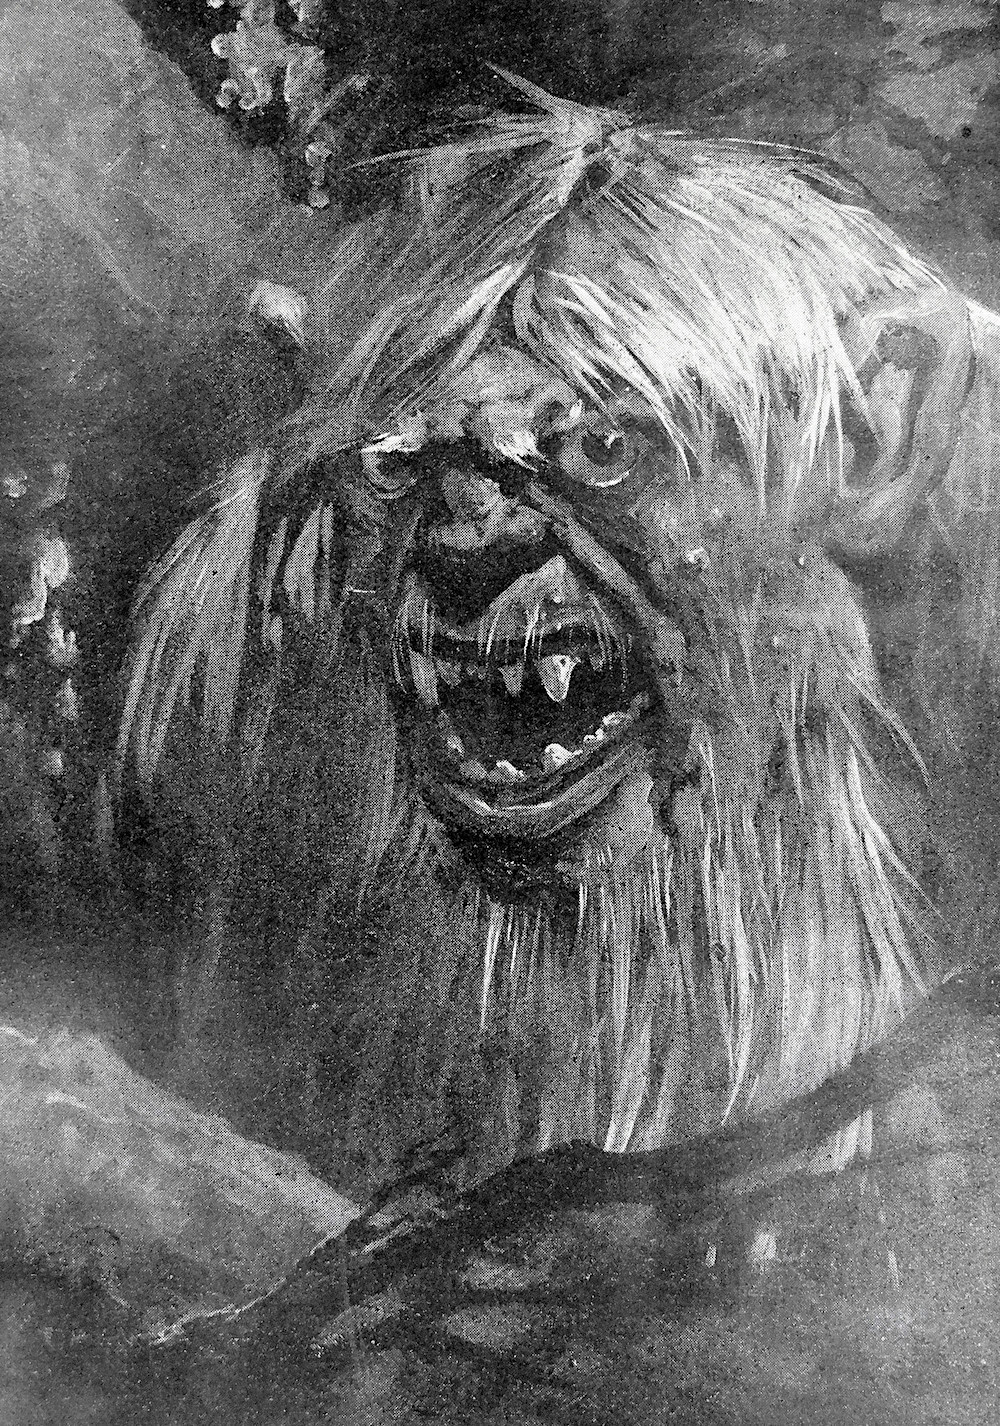 a Harry Rountree illustration of a monster ogre